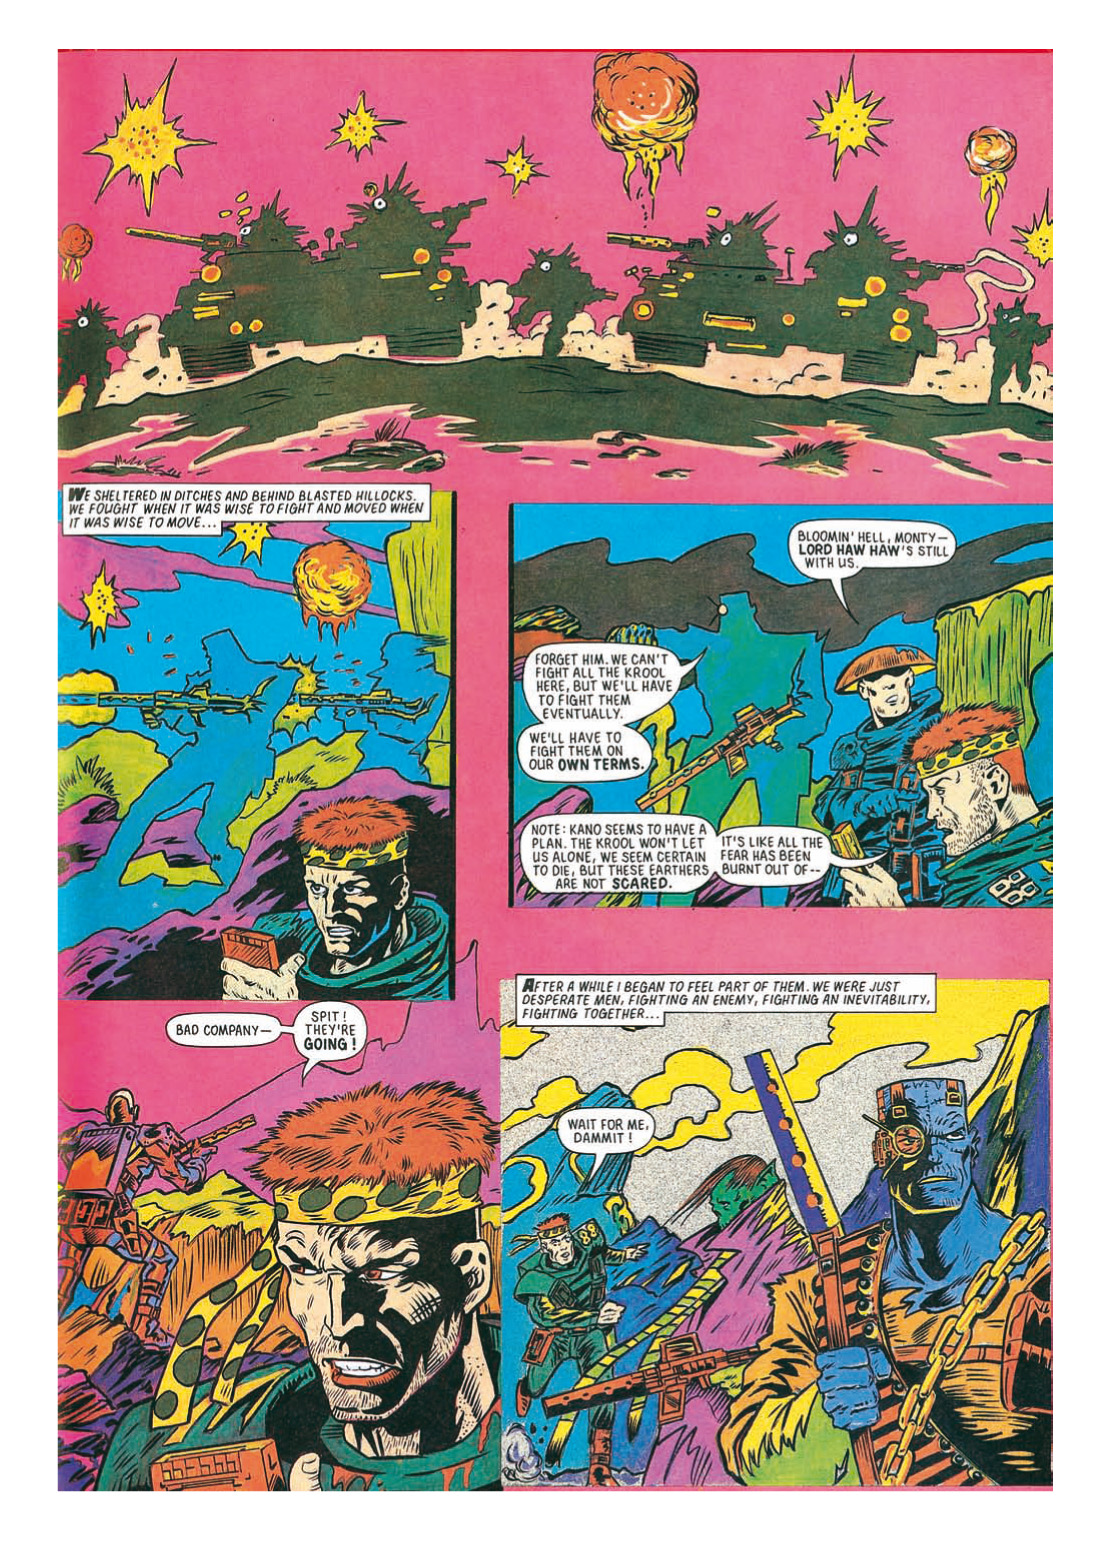 Read online The Complete Bad Company comic -  Issue # TPB - 251